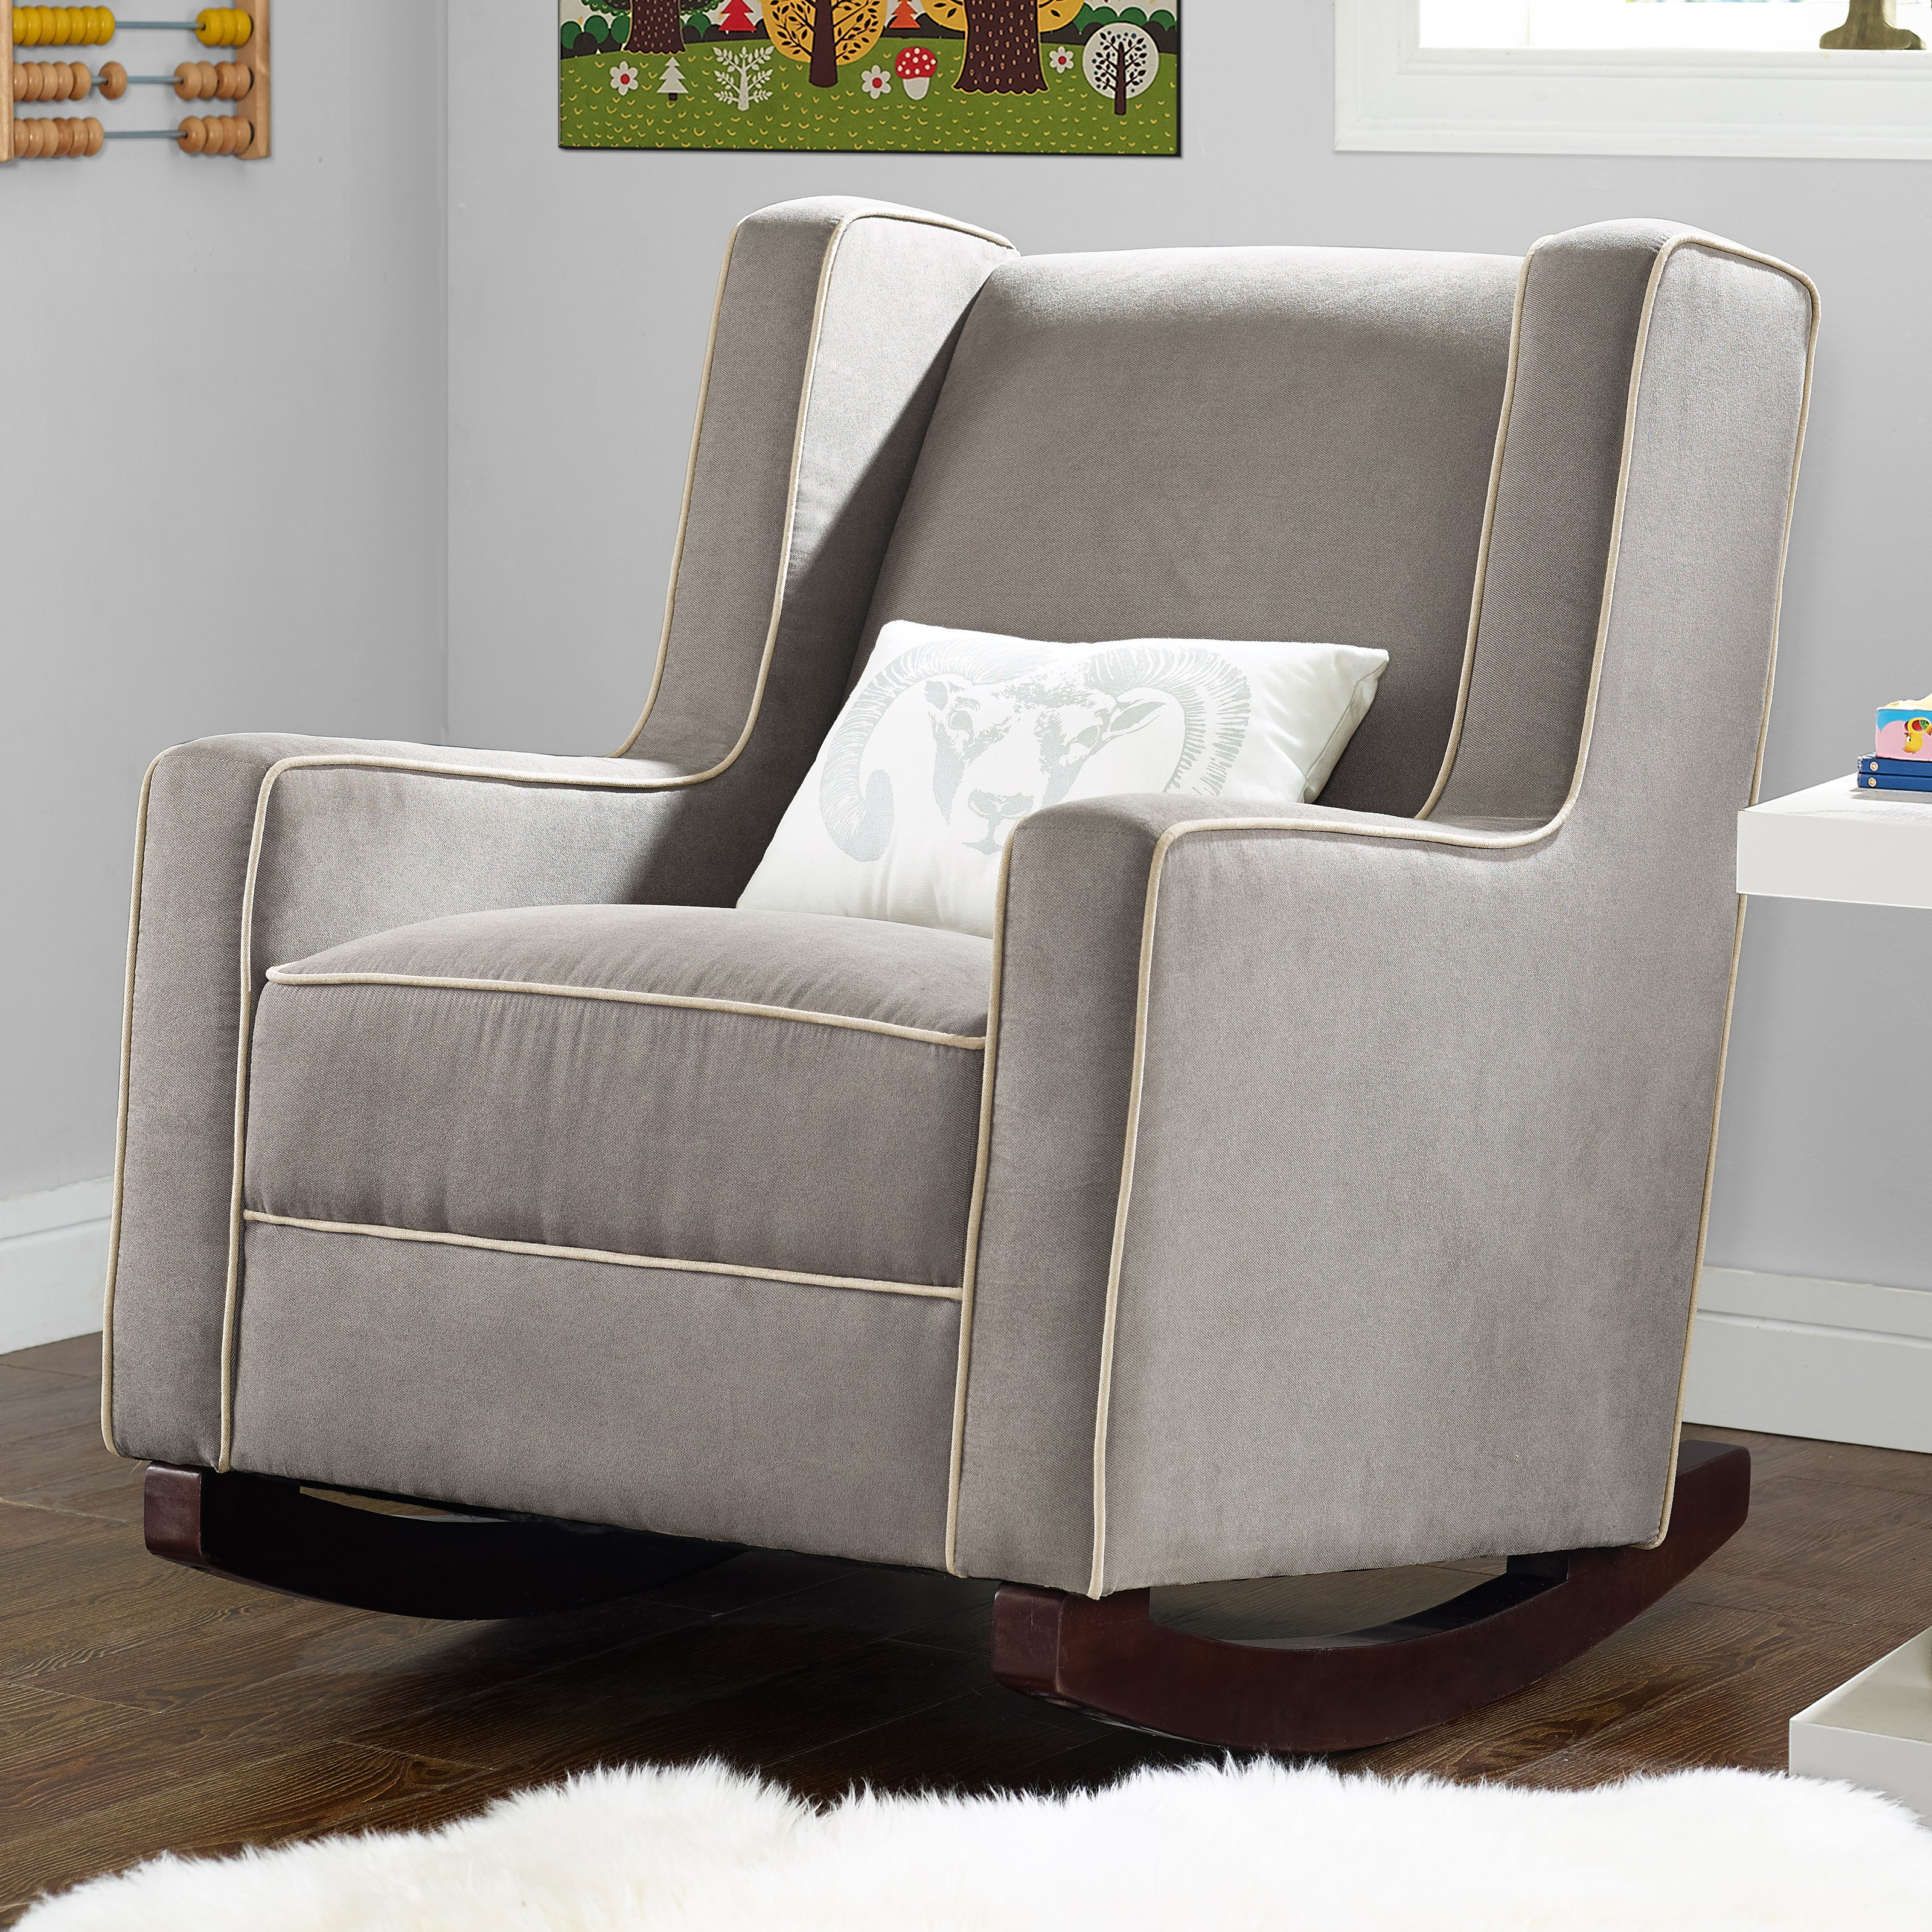 Recliner : Baby Relax Abby Rocker Luxury Glider And Recliner For In Abbey Swivel Glider Recliners (View 4 of 20)